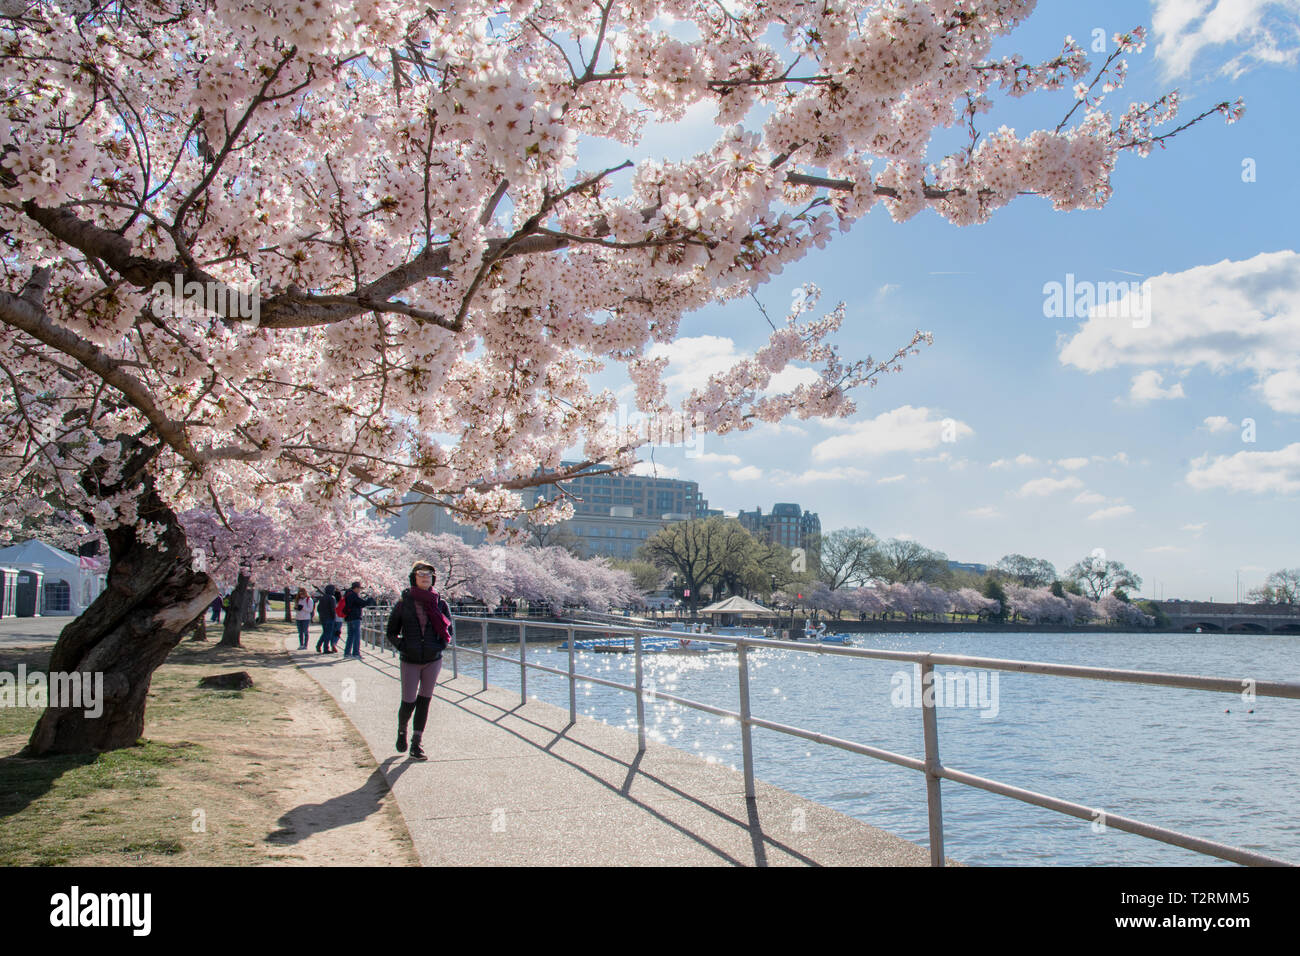 Cherry Blossoms In Peak Bloom Along The Tidal Basin April 1 2019 In Washington D C The Flowering Cherry Trees Originated In 1912 As A Gift Of Friendship From The People Of Japan